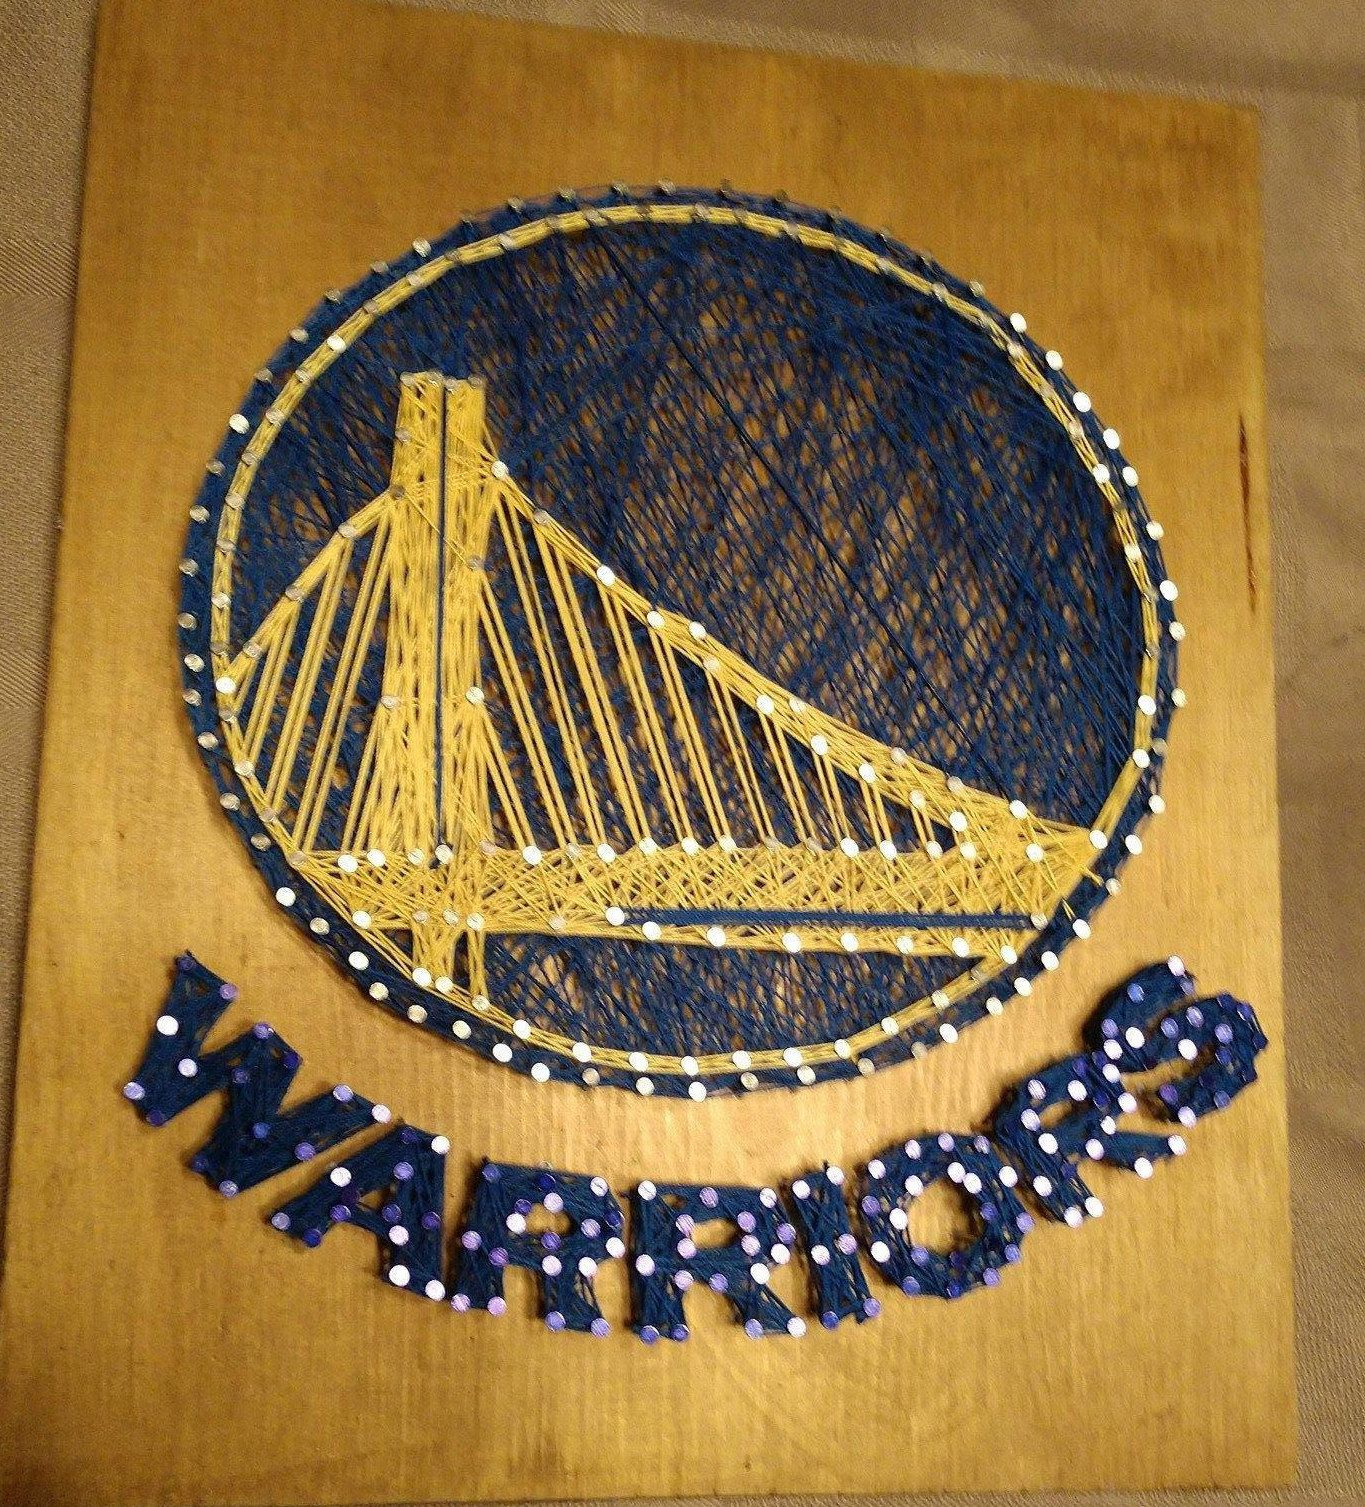 Golden State Warriors String Art By Bornagainboutiqueco On Etsy